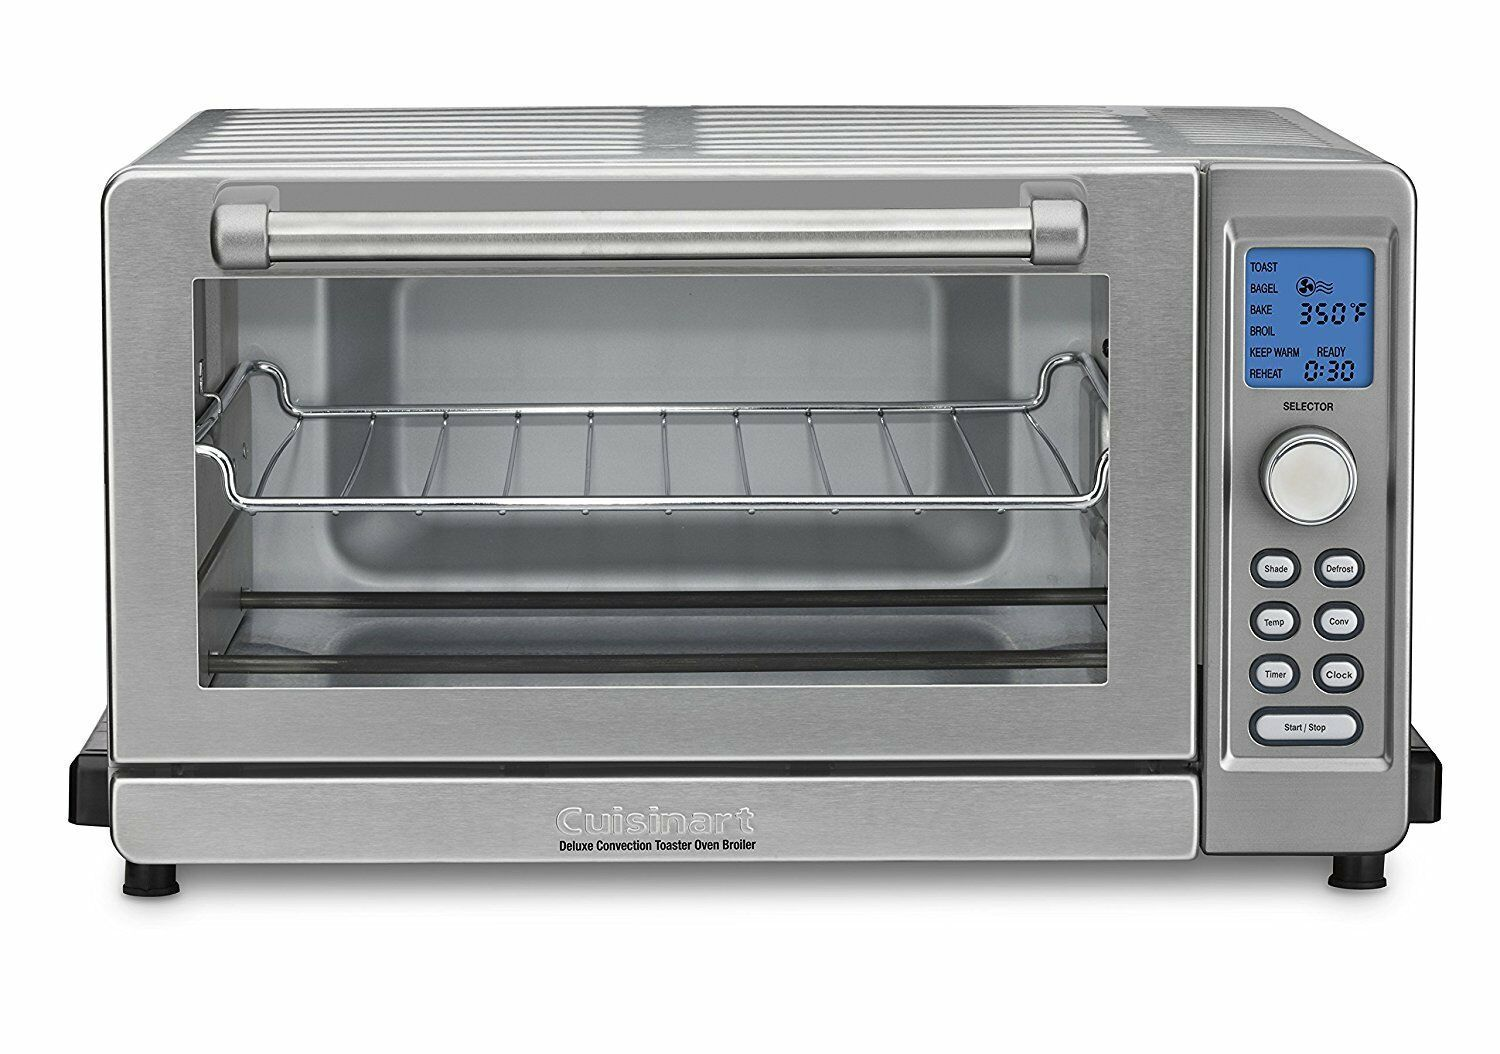 Cuisinart Tob 135 Deluxe Convection Toaster Oven Broiler Stainless Steel Countertop Oven Convection Toaster Oven Toaster Oven Reviews